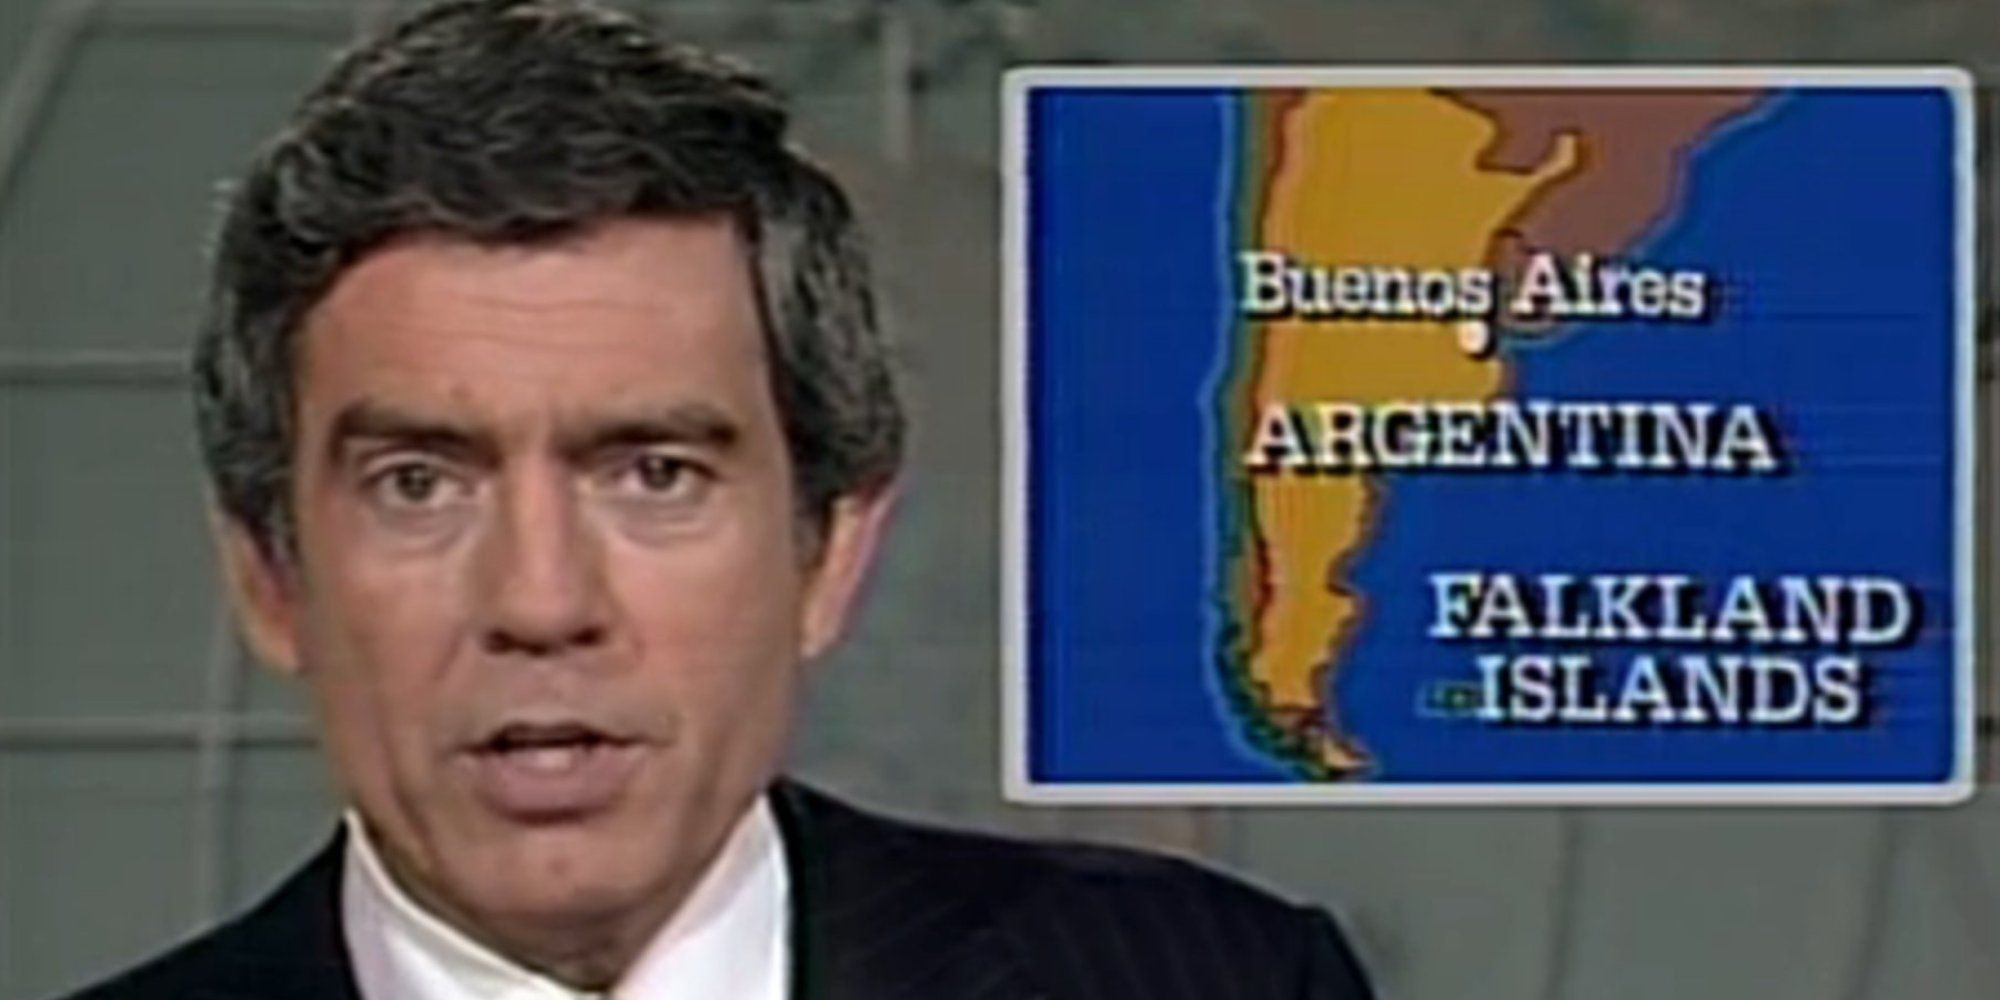 CBS News has responded to Fox News host Bill O'Reilly's request and released the footage of its coverage of the conflict between the United Kingdom and Argentina during the 1982 Falklands War.  O'Reilly has come under fire after Mother Jones called...